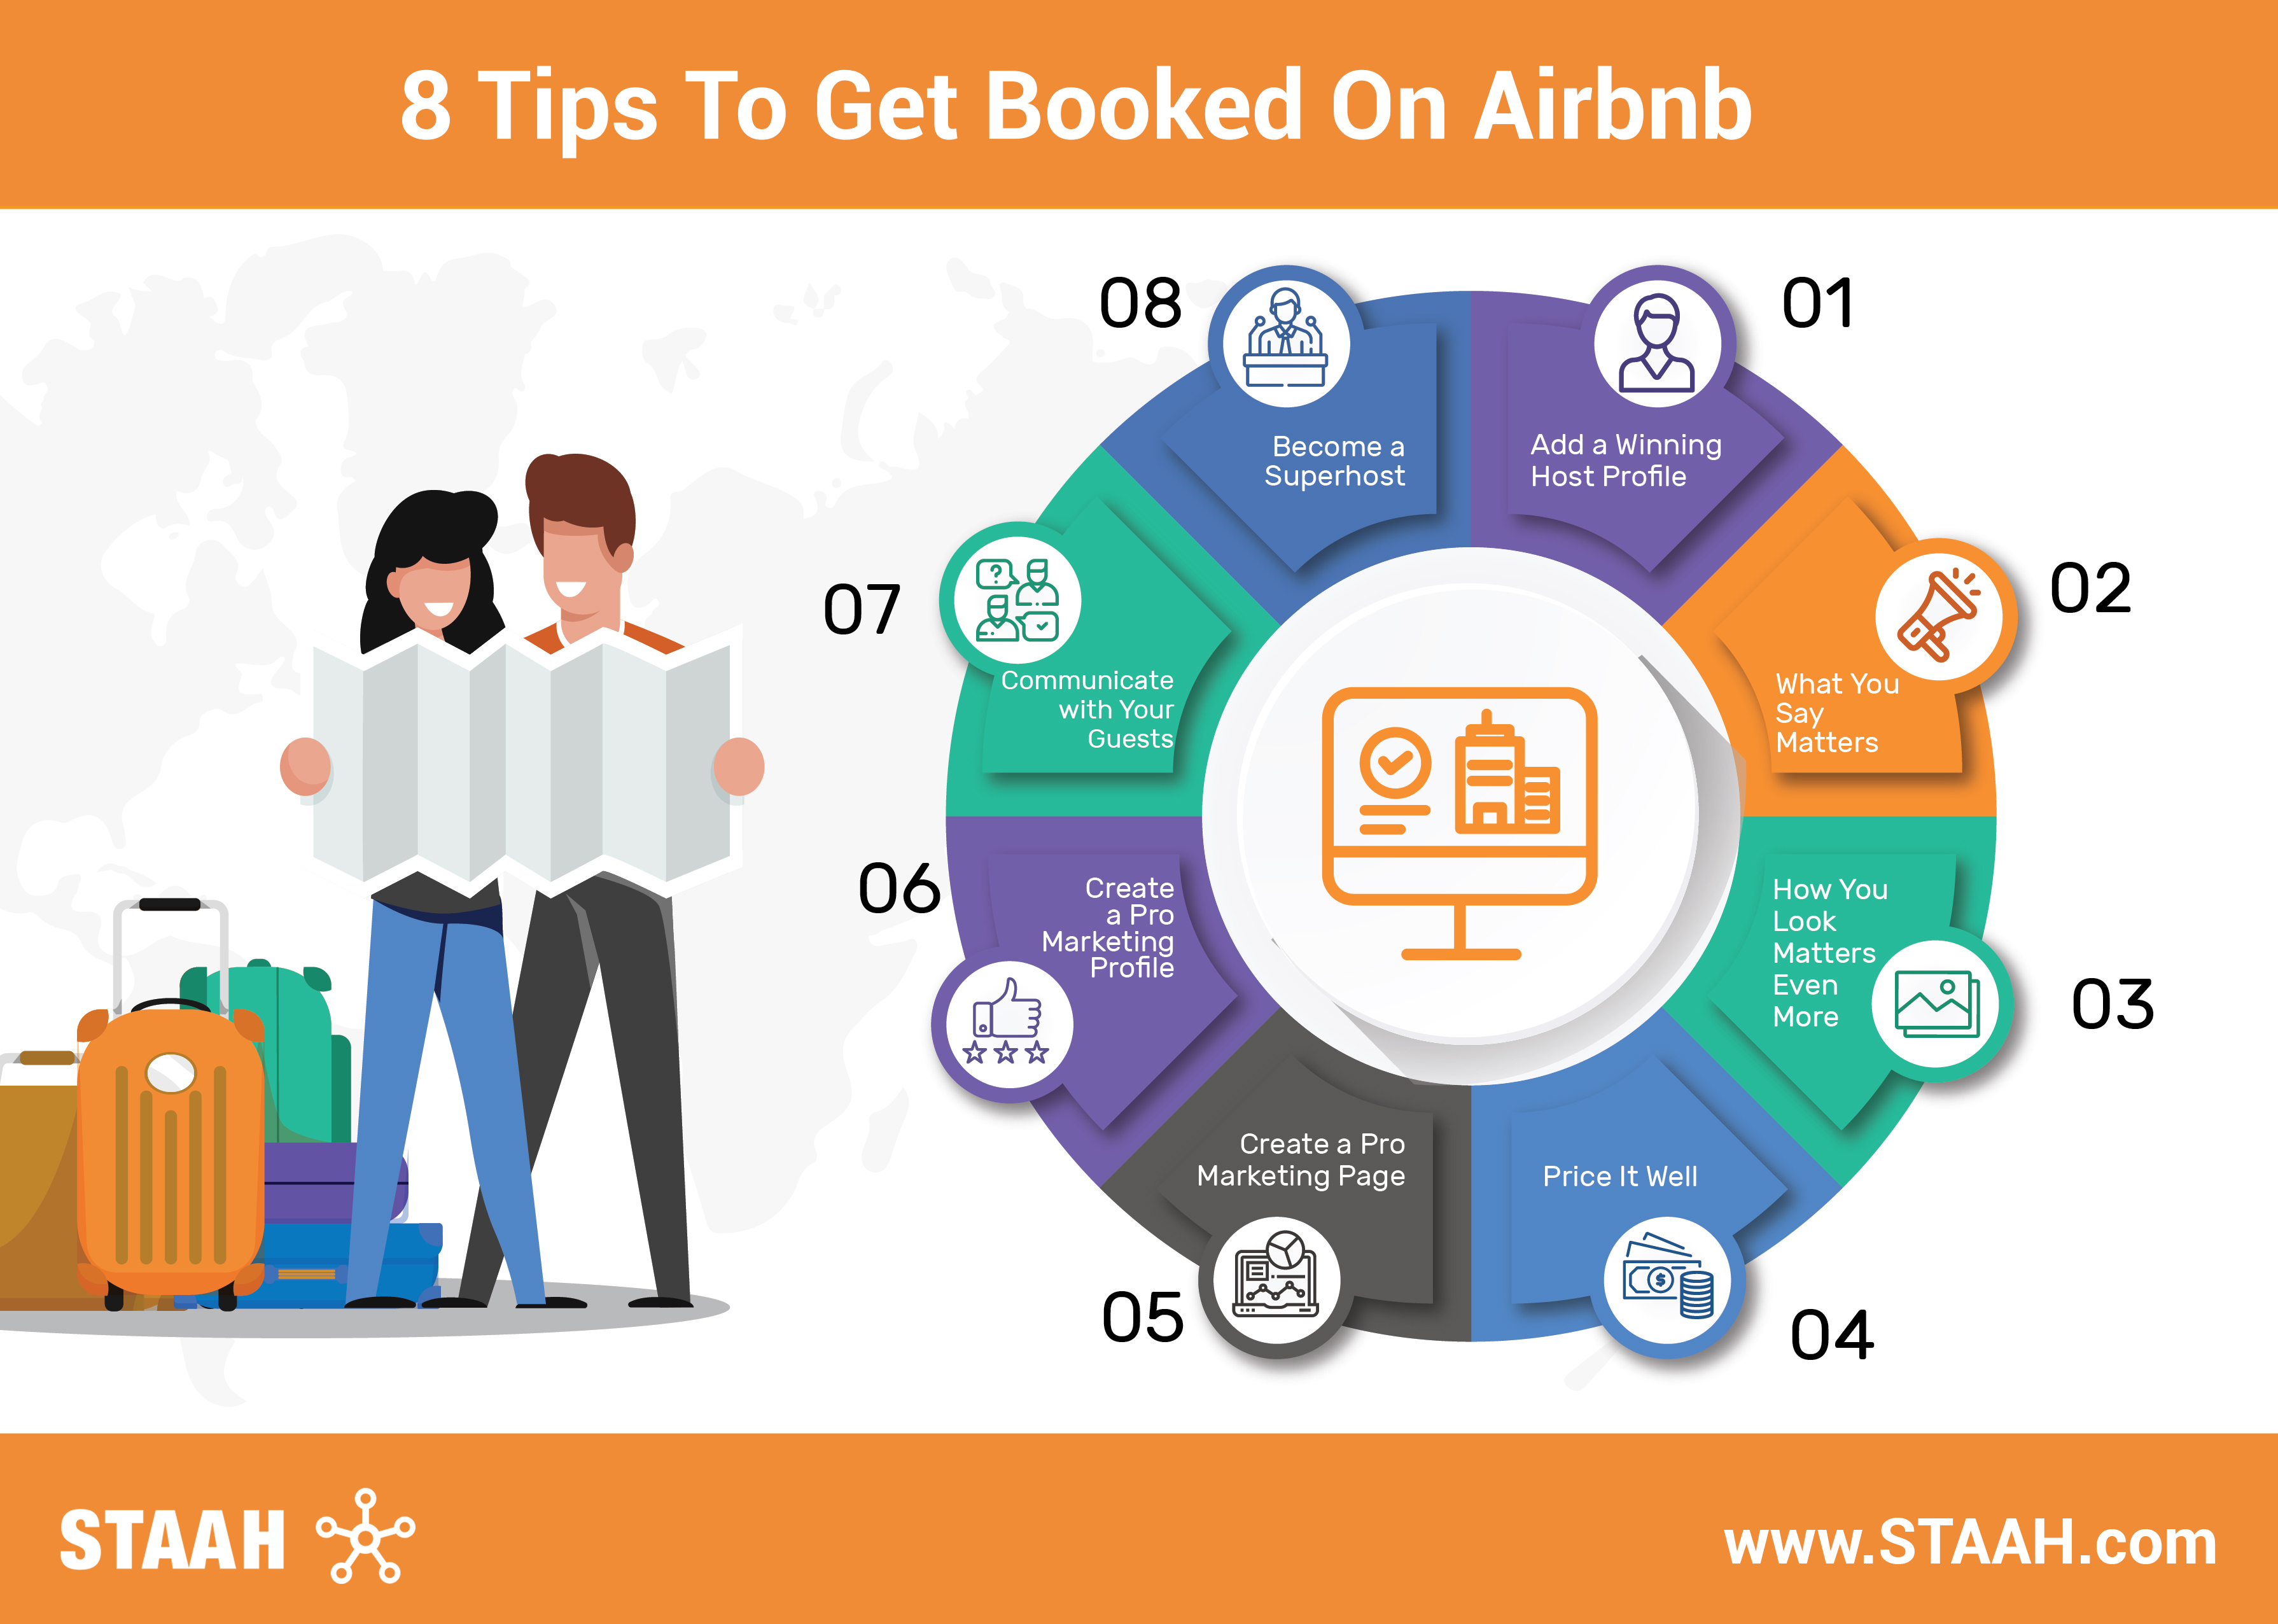 How To Get More Booked On Airbnb? - STAAH Blog